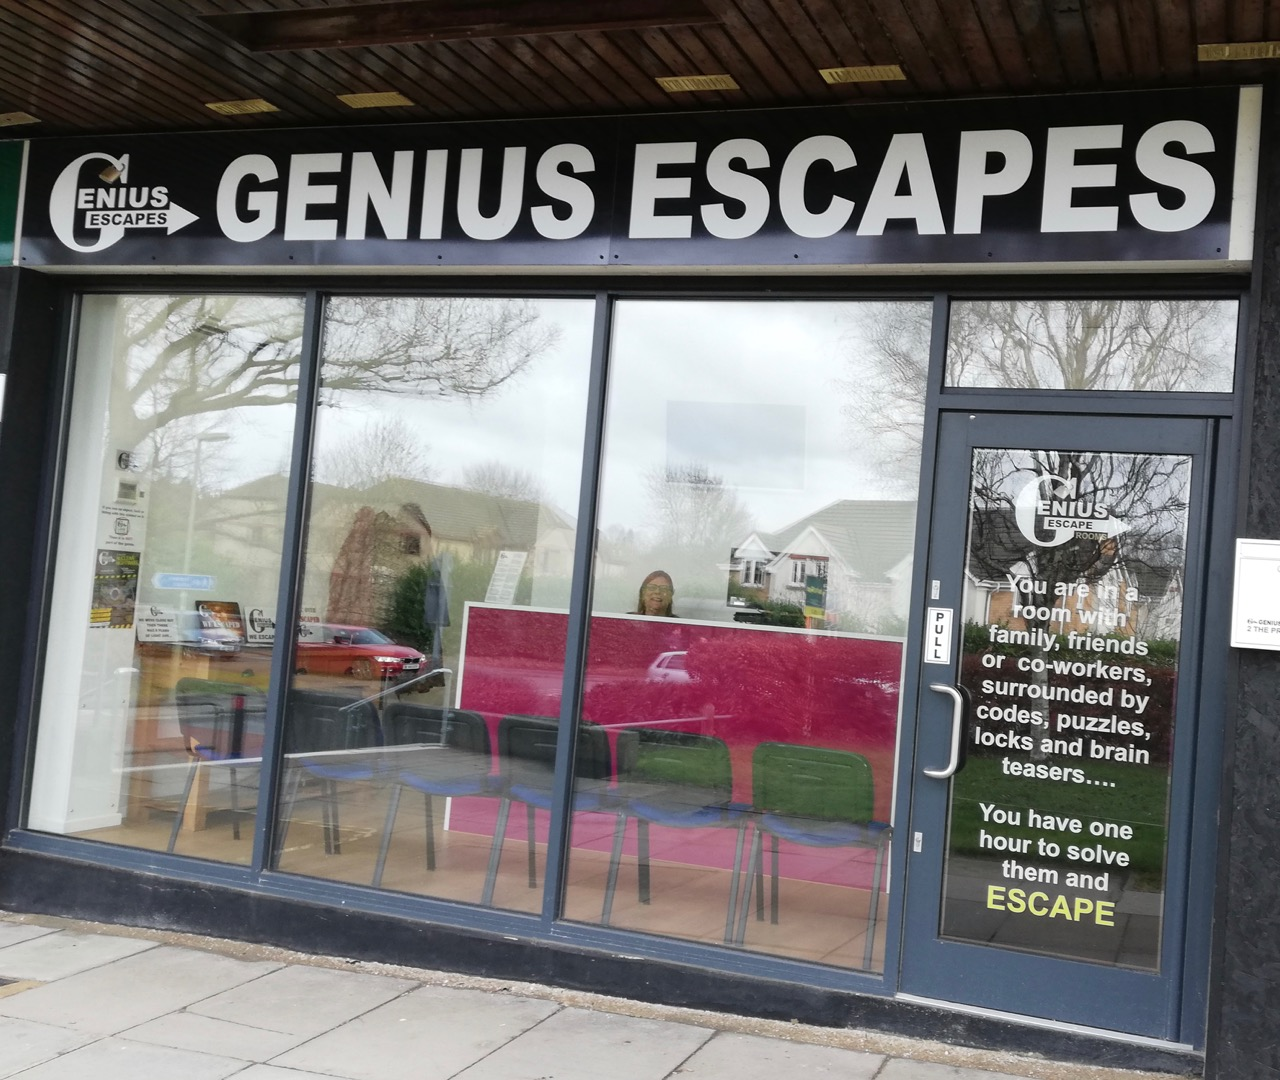 GeniusGenius Escapes in Chandler's Ford - where is this business? What does it do? When did it start?